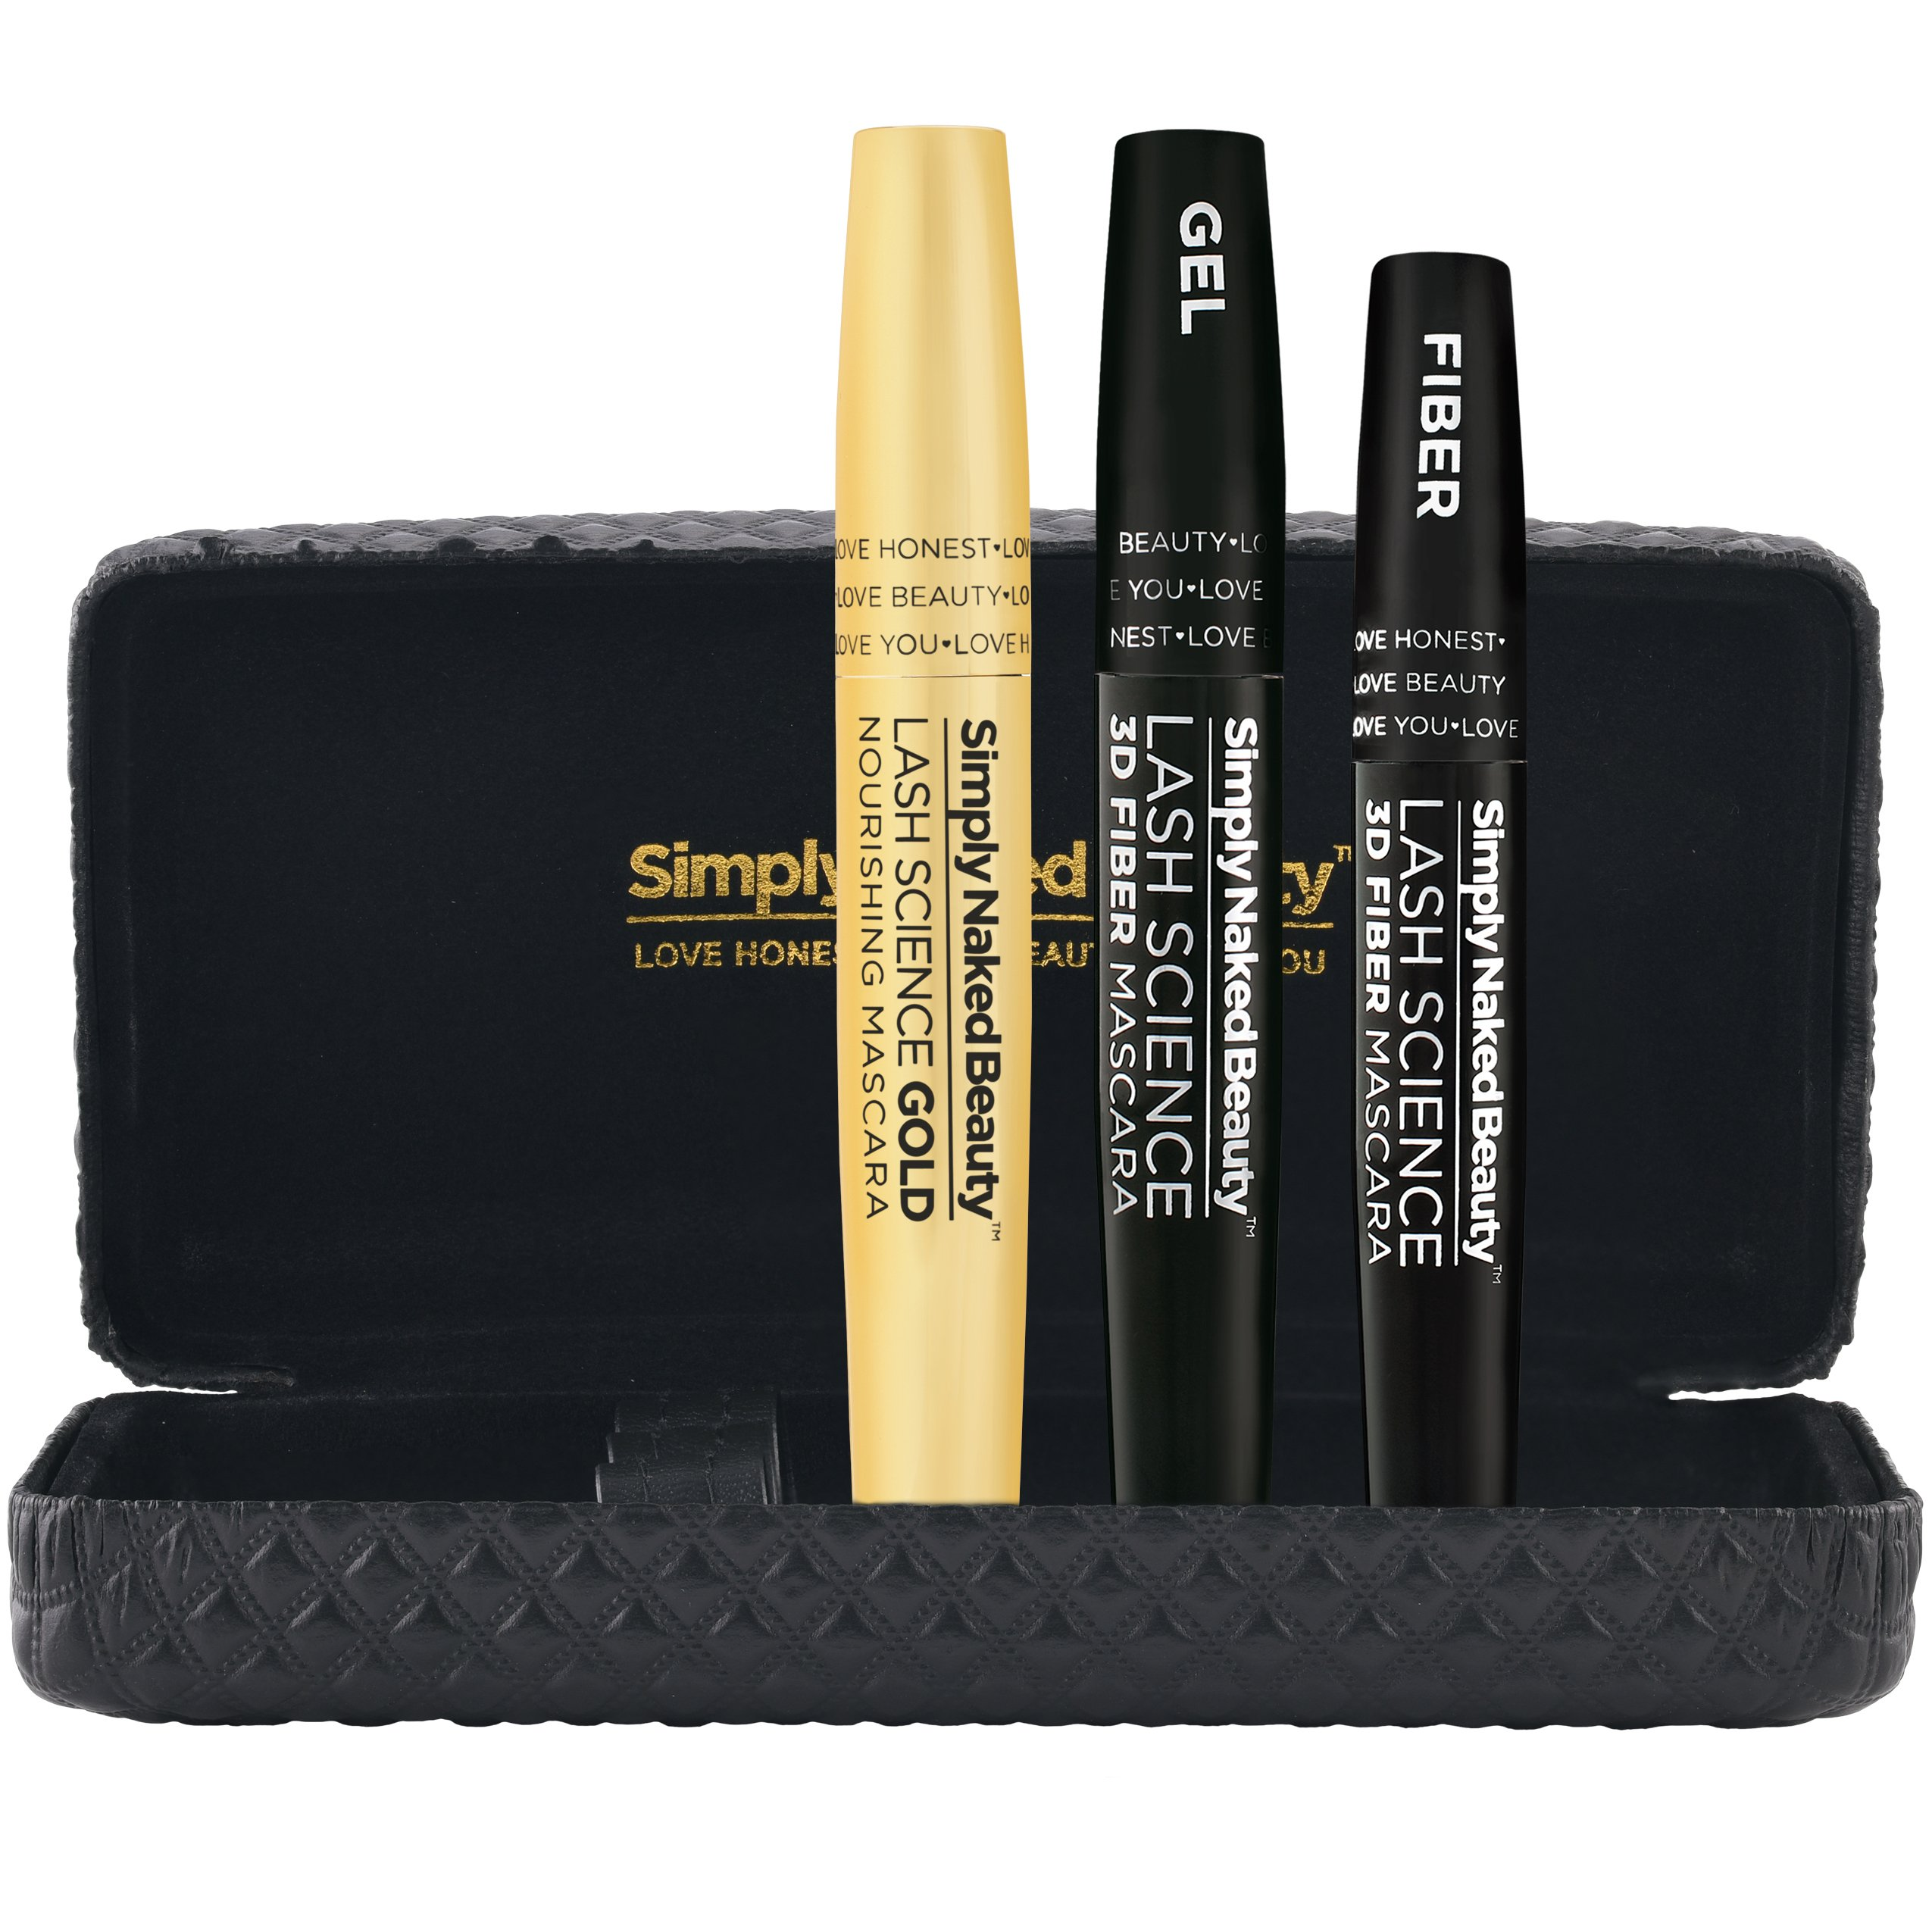 3D Fiber Lash Mascara with Eyelash Enhancing Serum by Simply Naked Beauty. Infused with Organic Castor Oil to nourish lashes and promote growth. Organic & hypoallergenic ingredients. Waterproof. Black